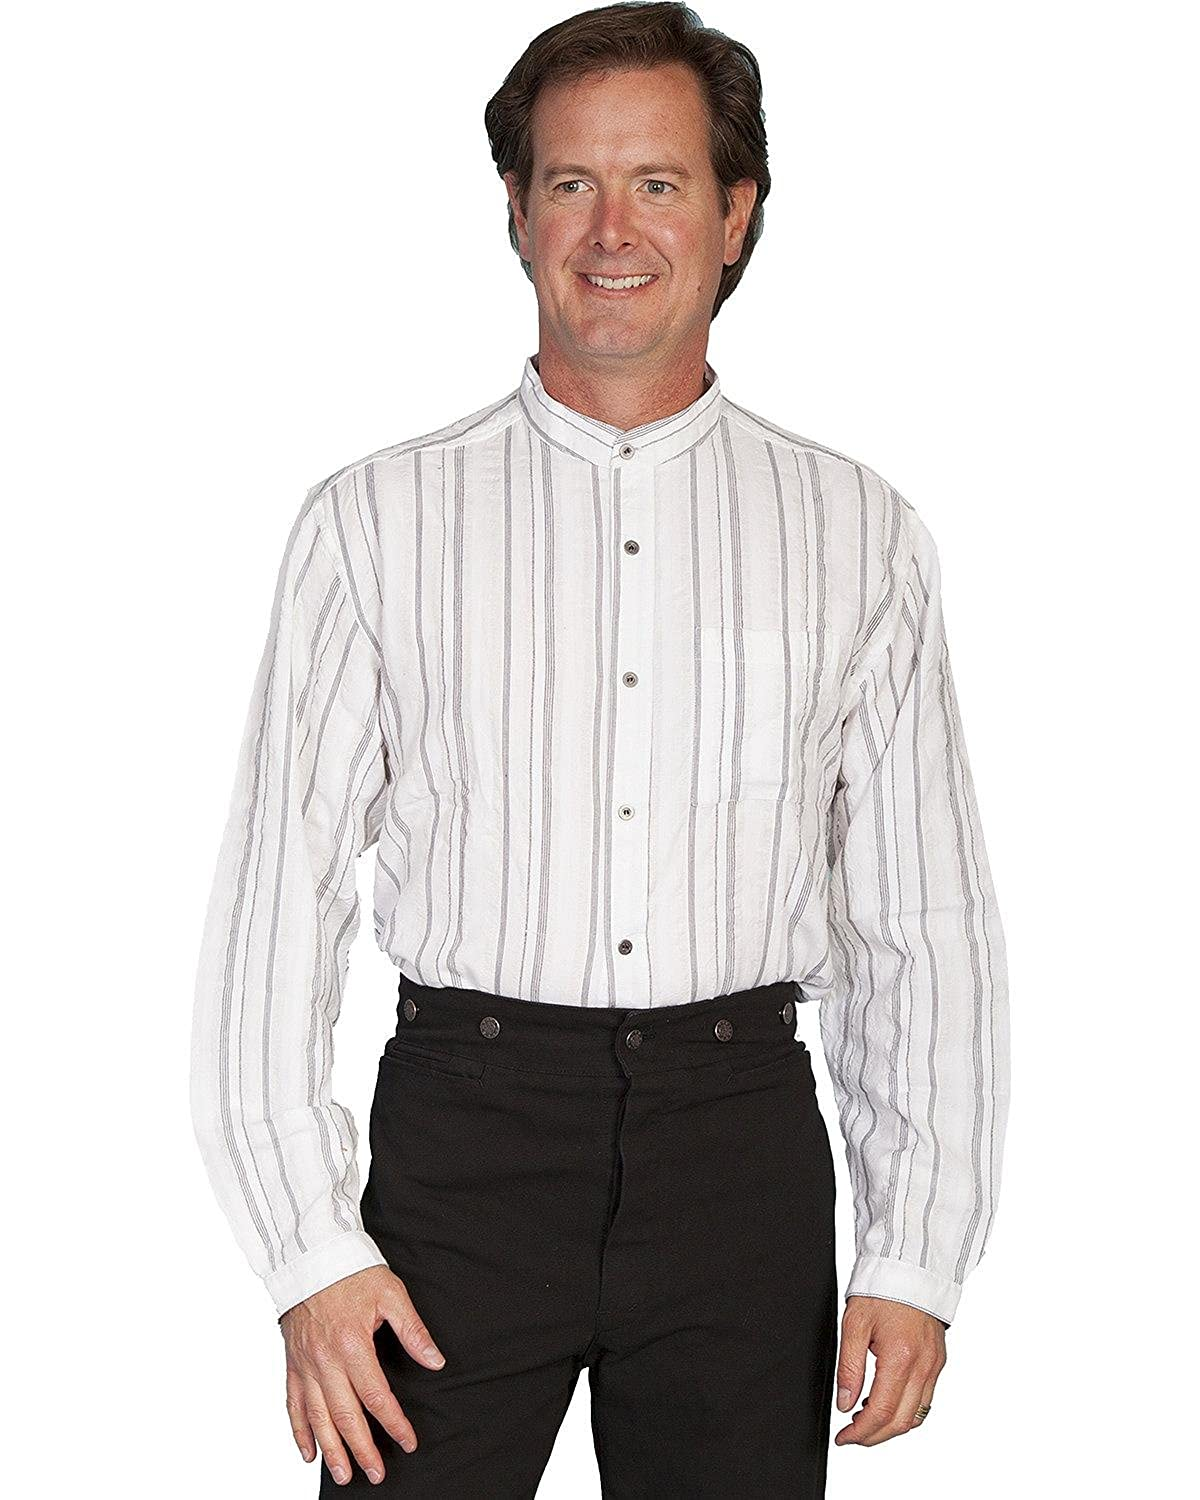 1920s Men's Dress Shirts, Casual Shirts Scully One of Our Best Selling Shirts - White $49.99 AT vintagedancer.com